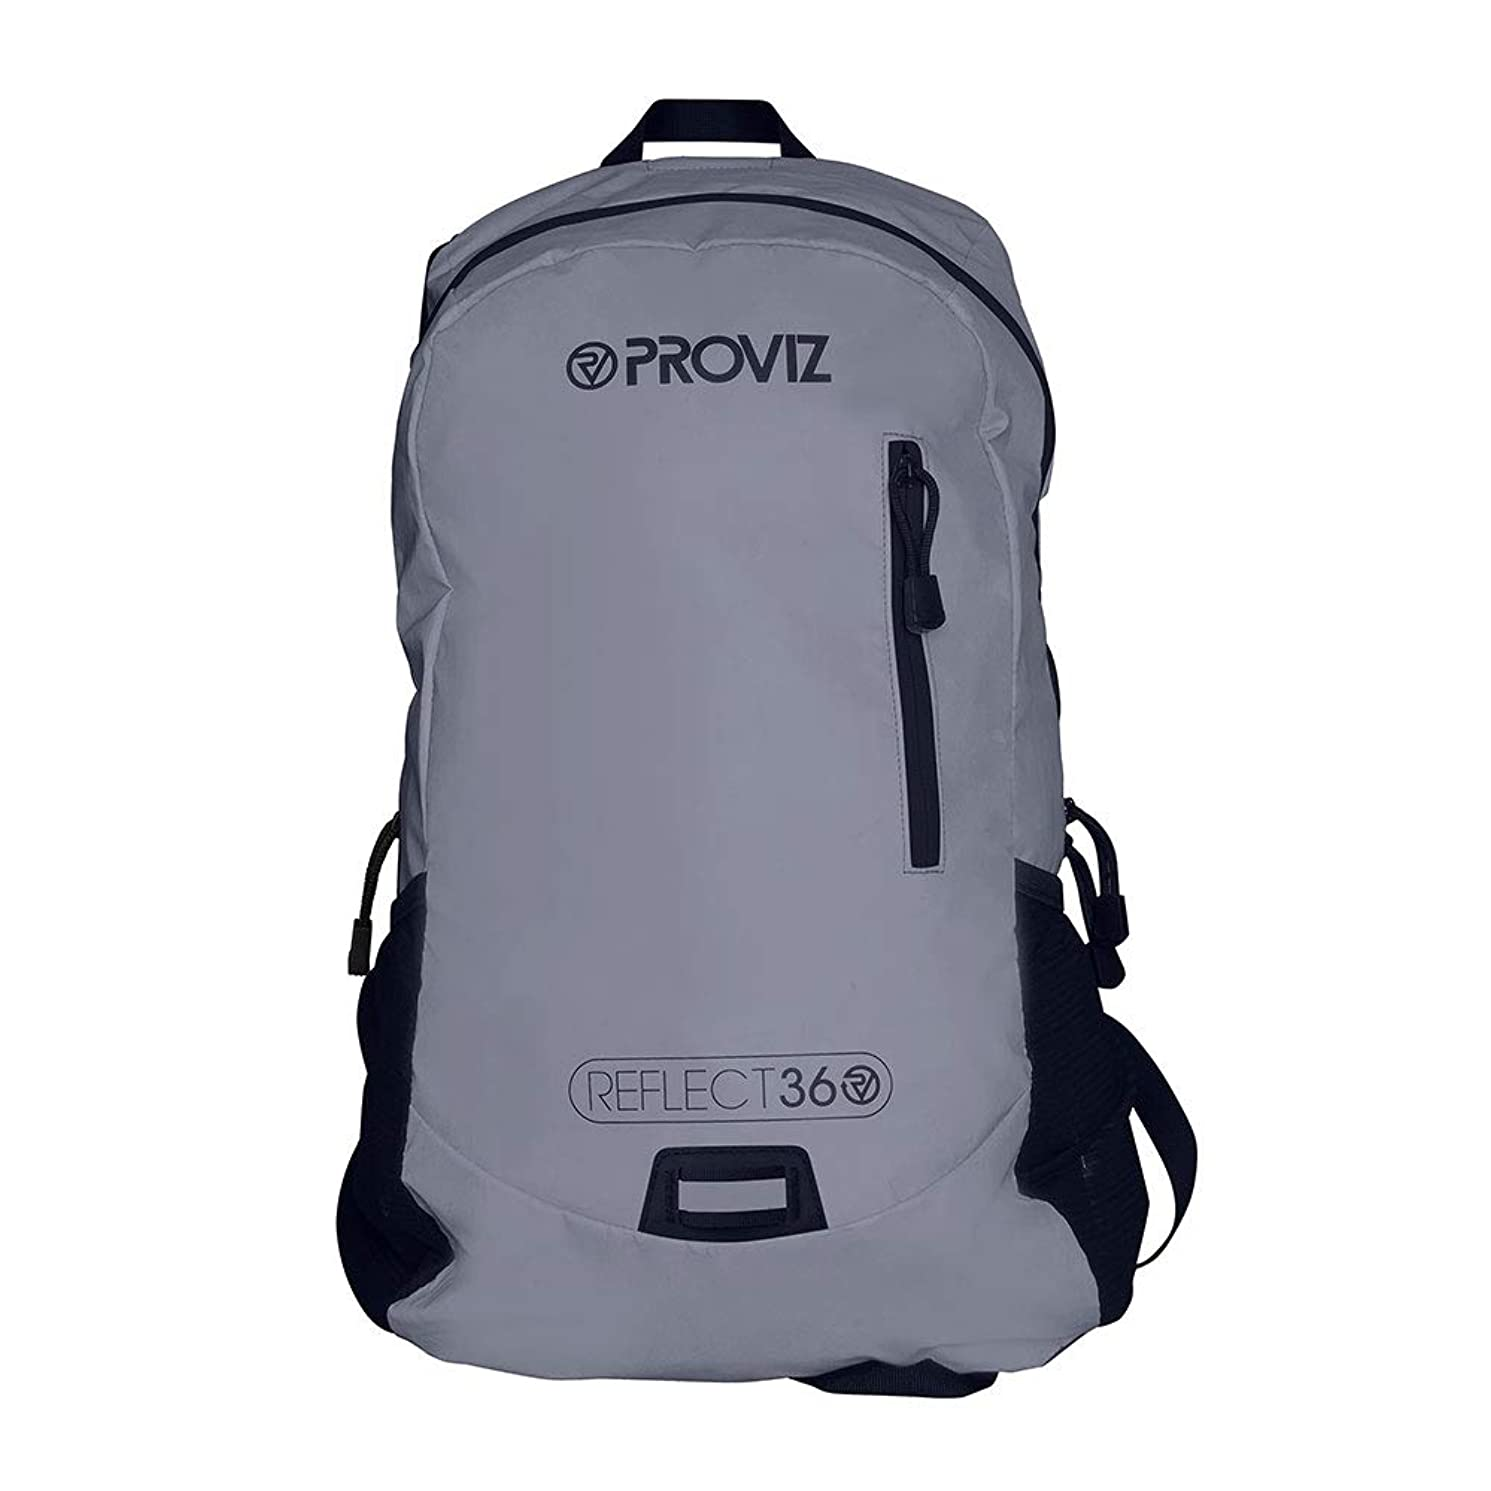 Proviz Sports Reflect360 100% Reflective High-Viz Highly Water Resistant Backpack/Rucksack, Great for Sports + Cycling